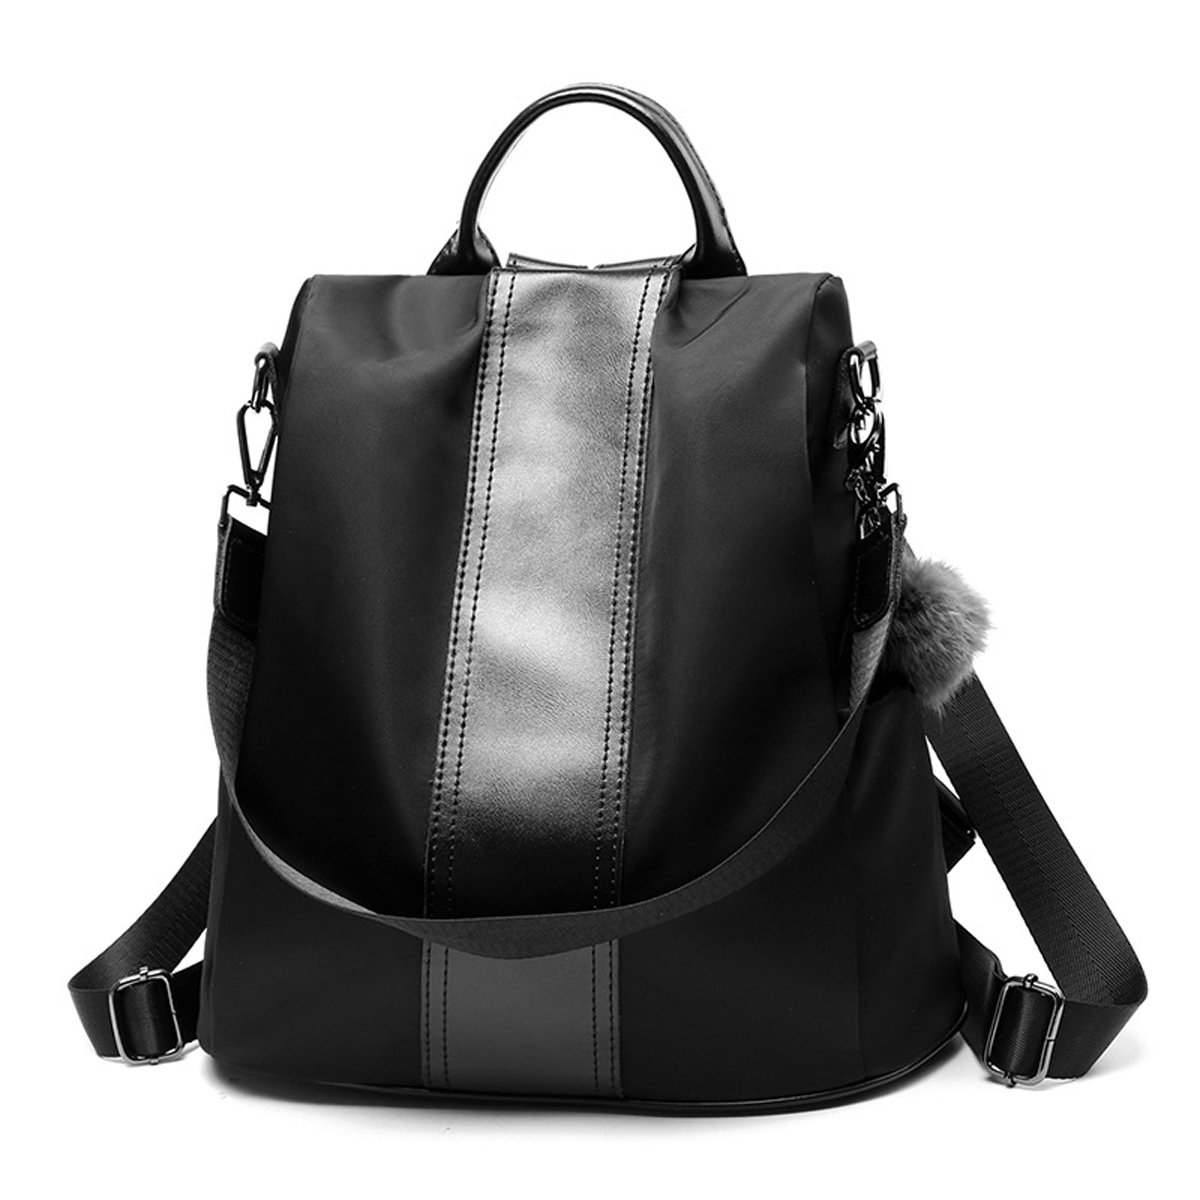 Nevenka Summer Backpack Purses for Women Zipper Close Polyester Cloth Shoulder Bags Top-handle Purse (Style 1, Black)